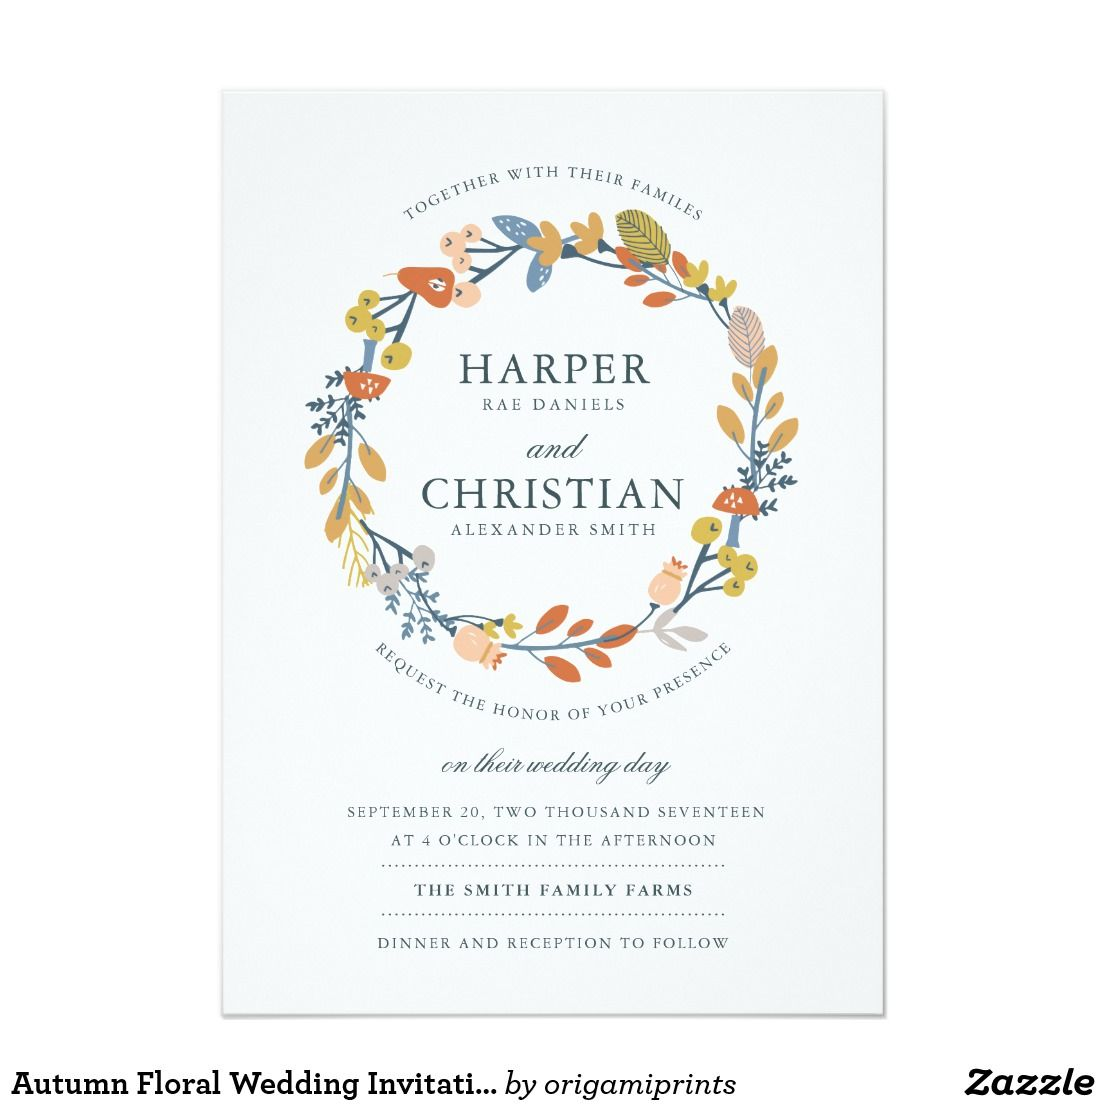 Autumn Floral Wedding Invitation | Pinterest | Themed weddings ...